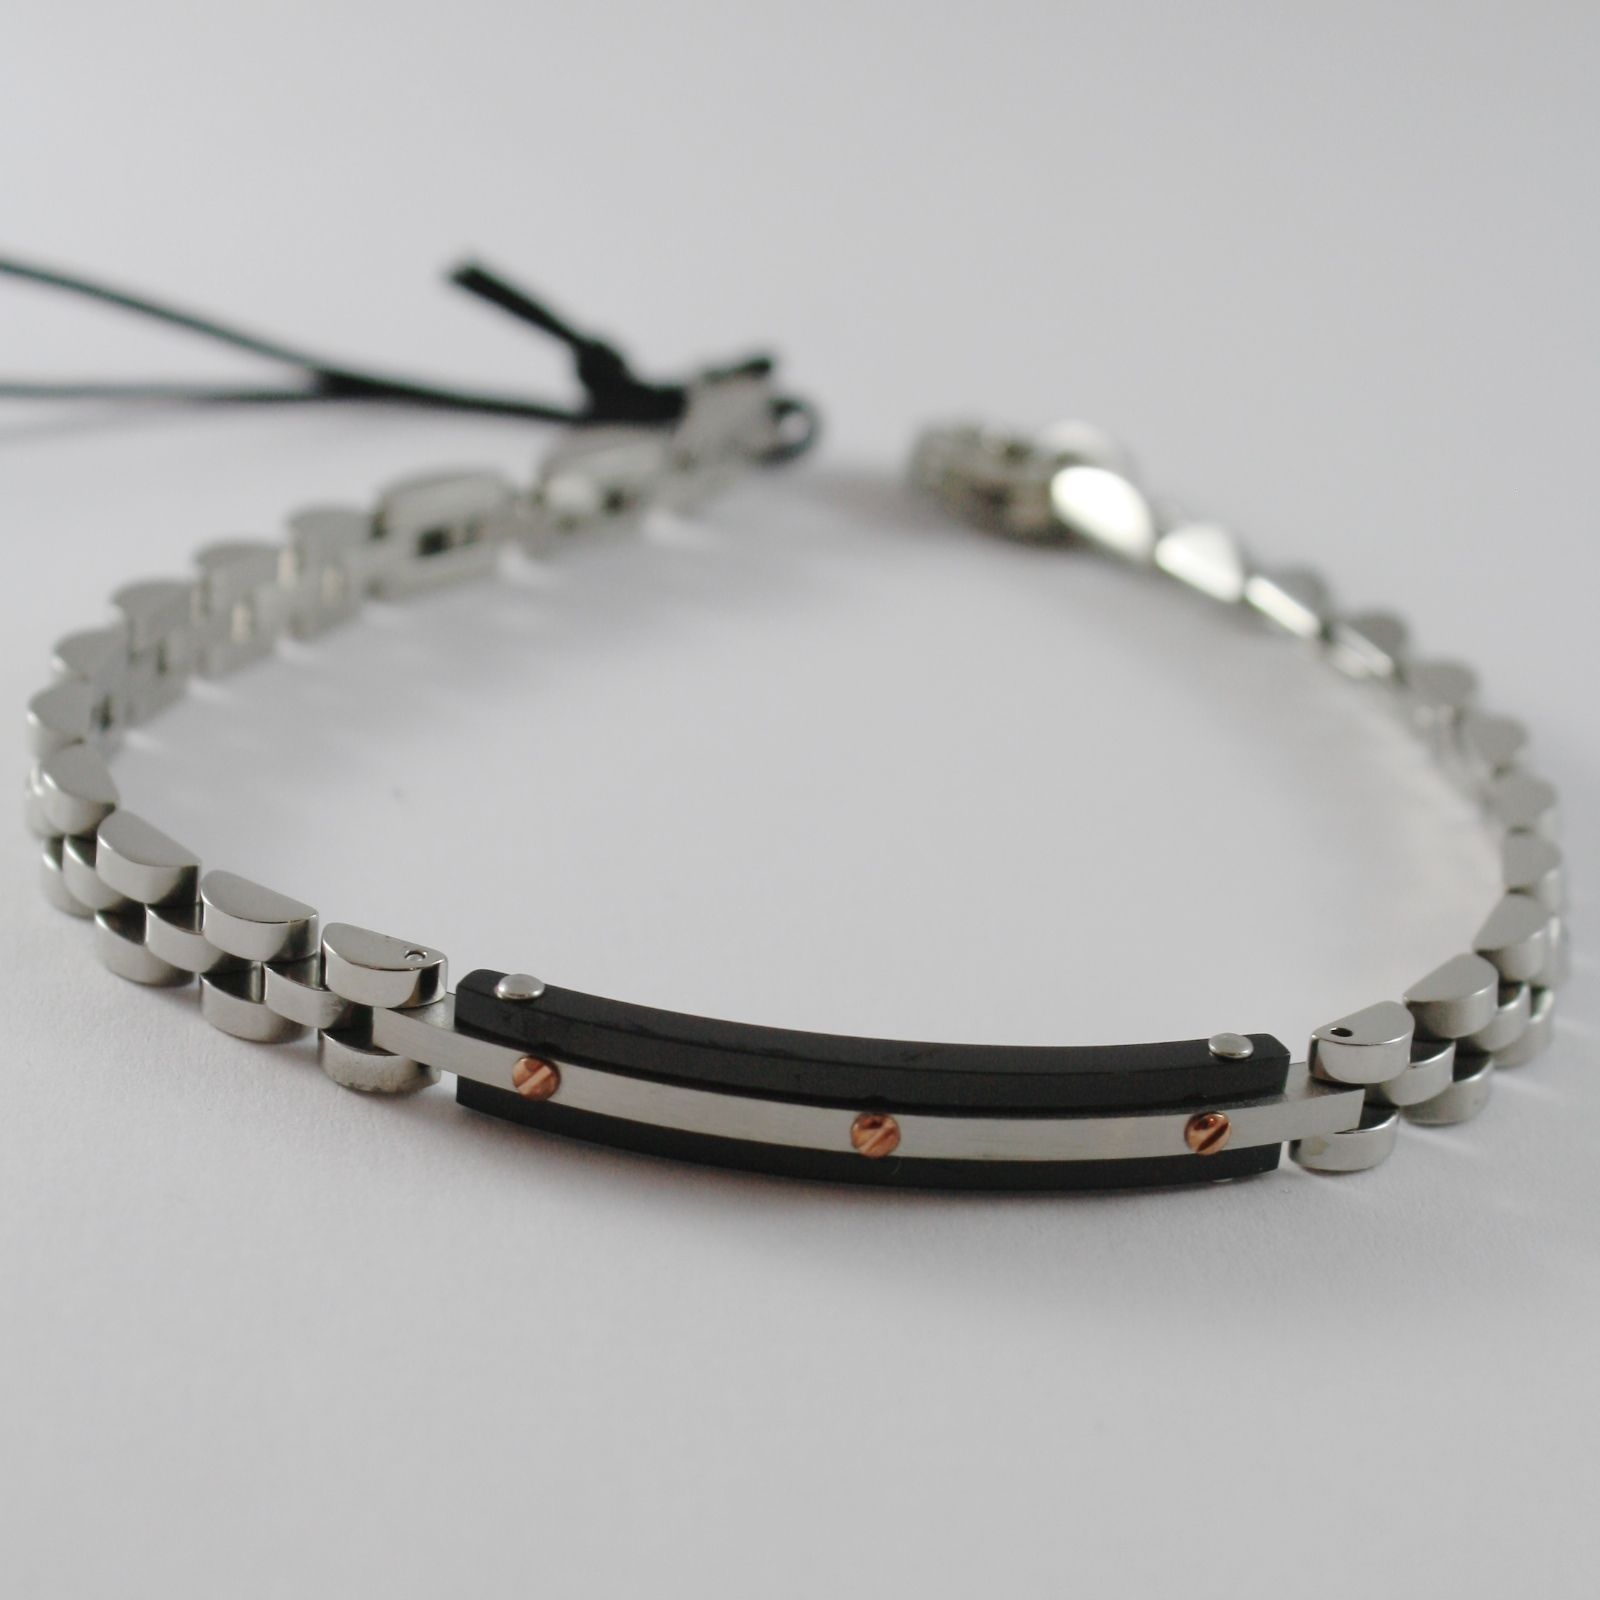 STEEL BRACELET POLISHED WITH PLATE CESARE PACIOTTI 4US ARTICLE 4UBR4180